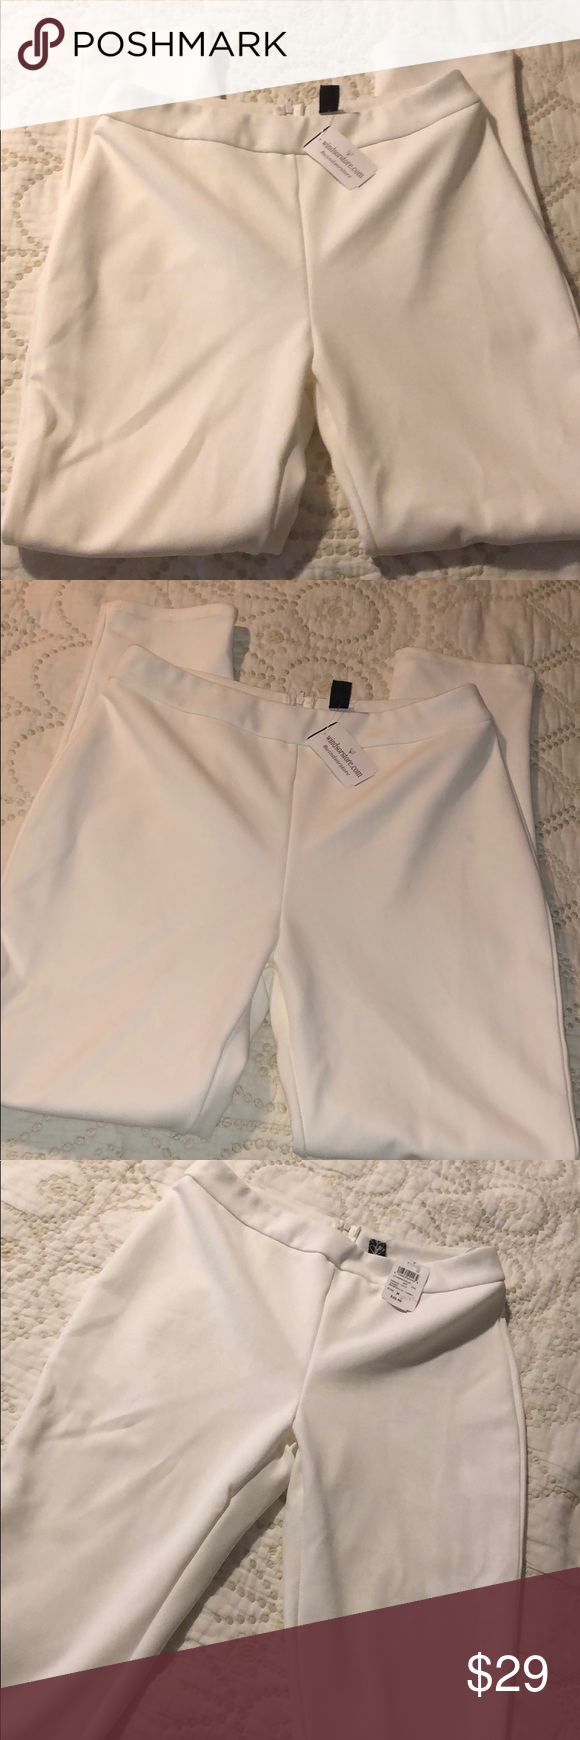 Windsor White Slacks Size M New with tags. Fitted Pants Windsor Pants Skinny #whiteslacks Windsor White Slacks Size M New with tags. Fitted Pants Windsor Pants Skinny #whiteslacks